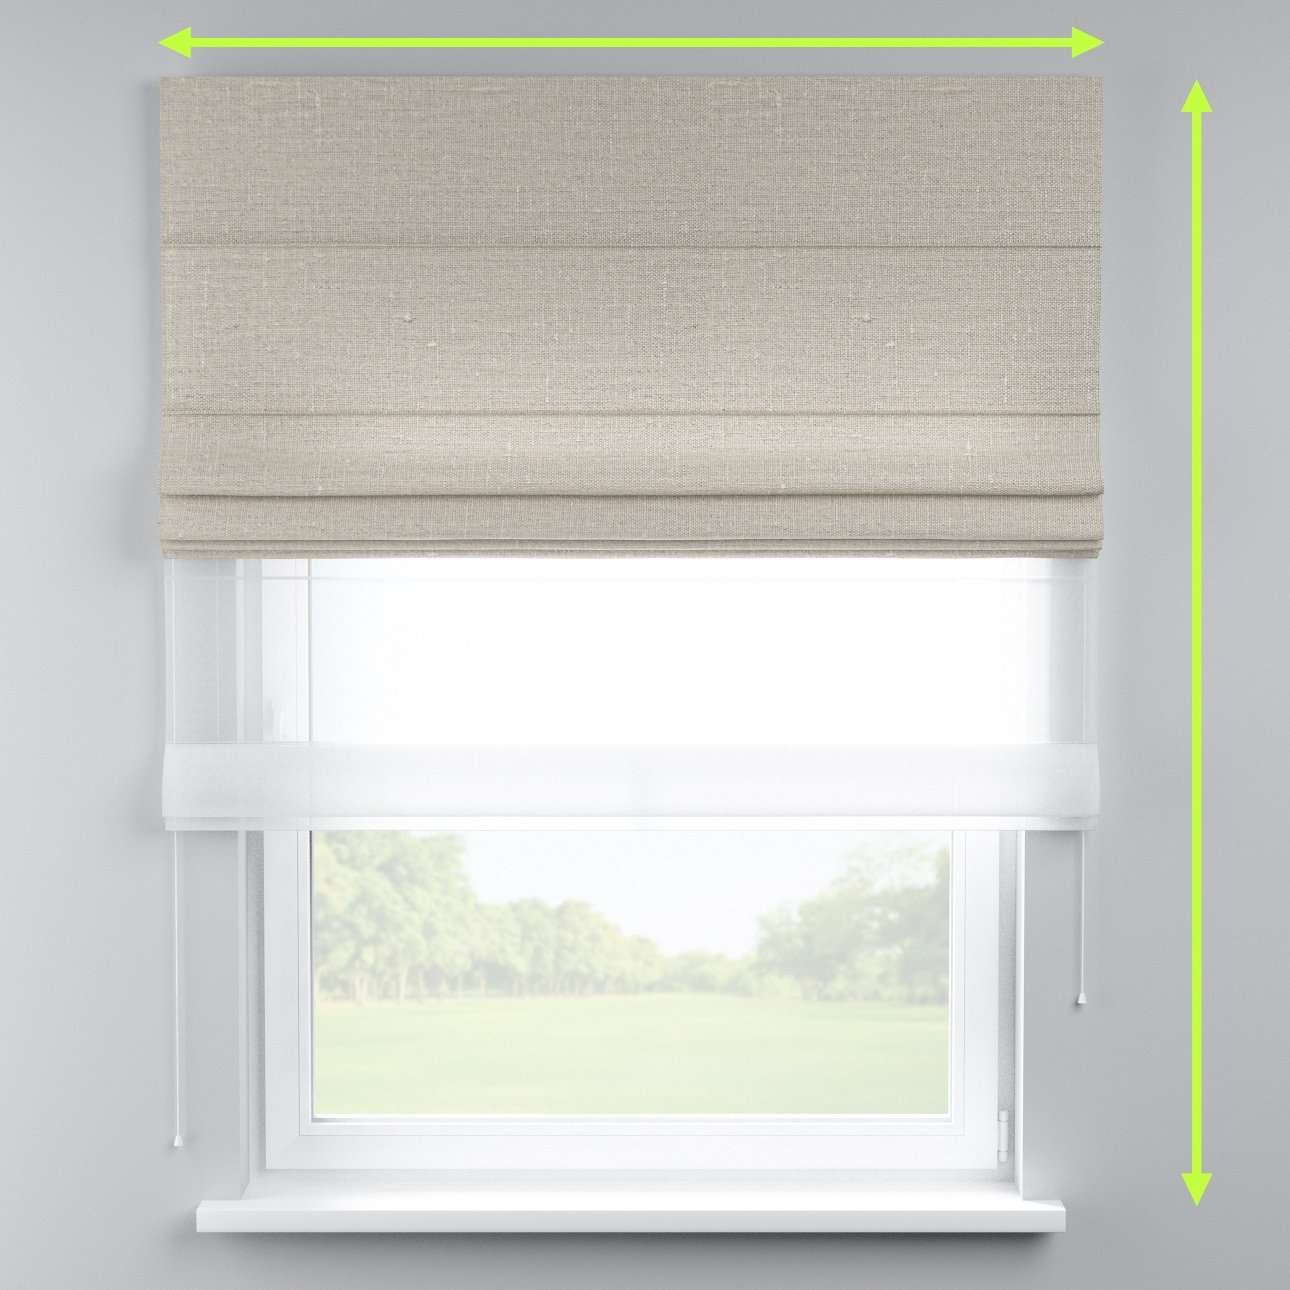 Voile and fabric roman blind (DUO II) in collection Linen, fabric: 392-05